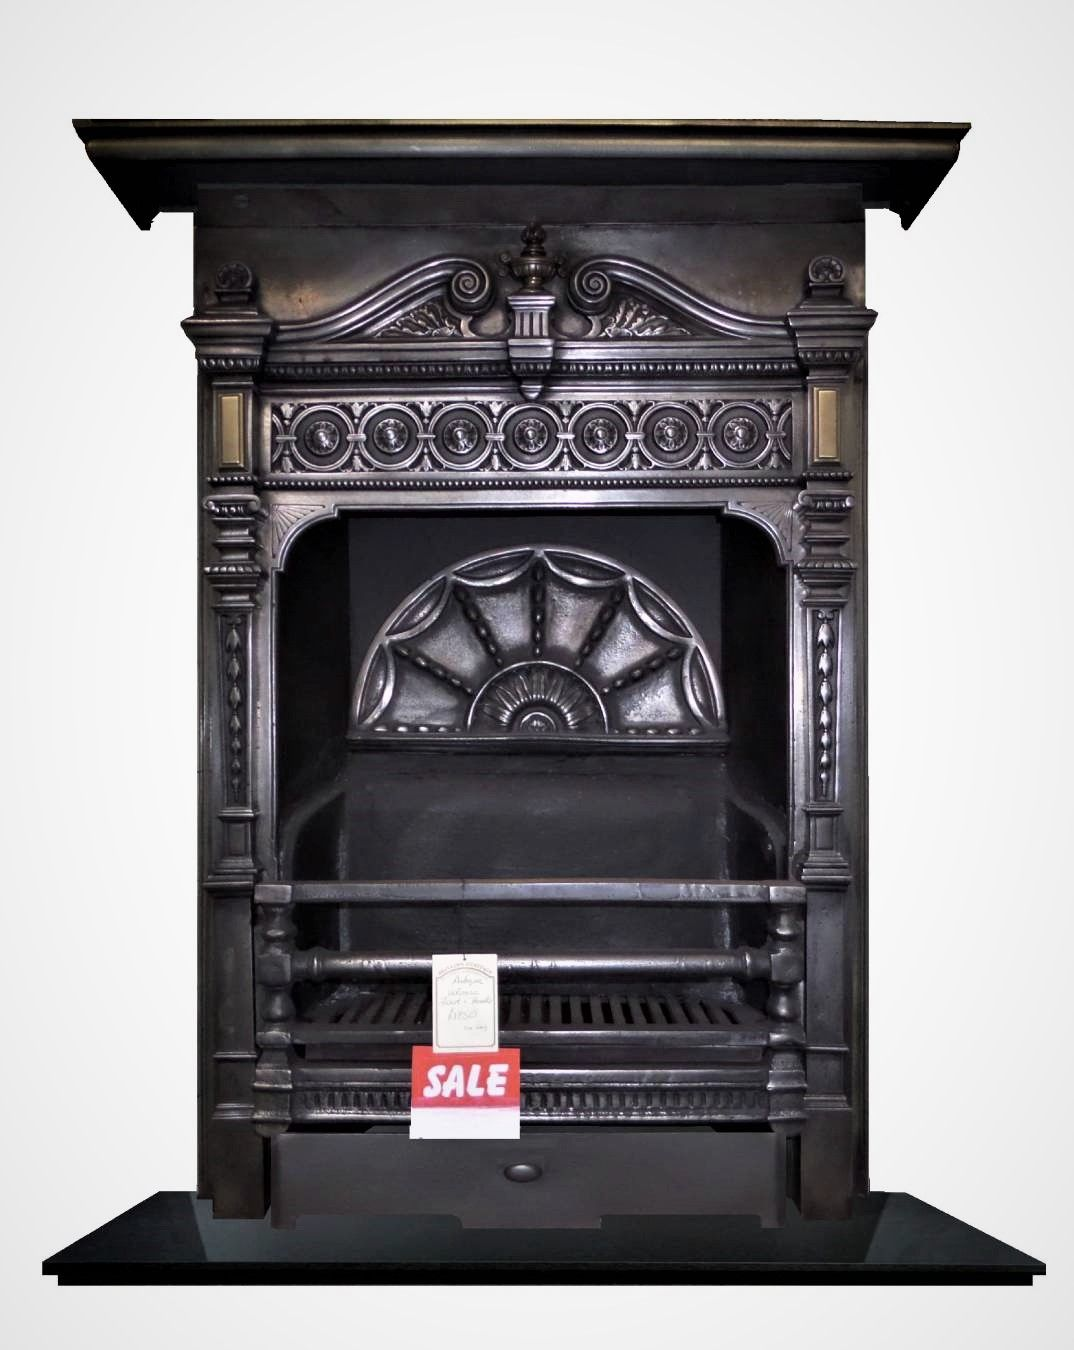 Amazing Ornate Victorian Fireplace For Sale Offers Invited Email Home Interior And Landscaping Ologienasavecom